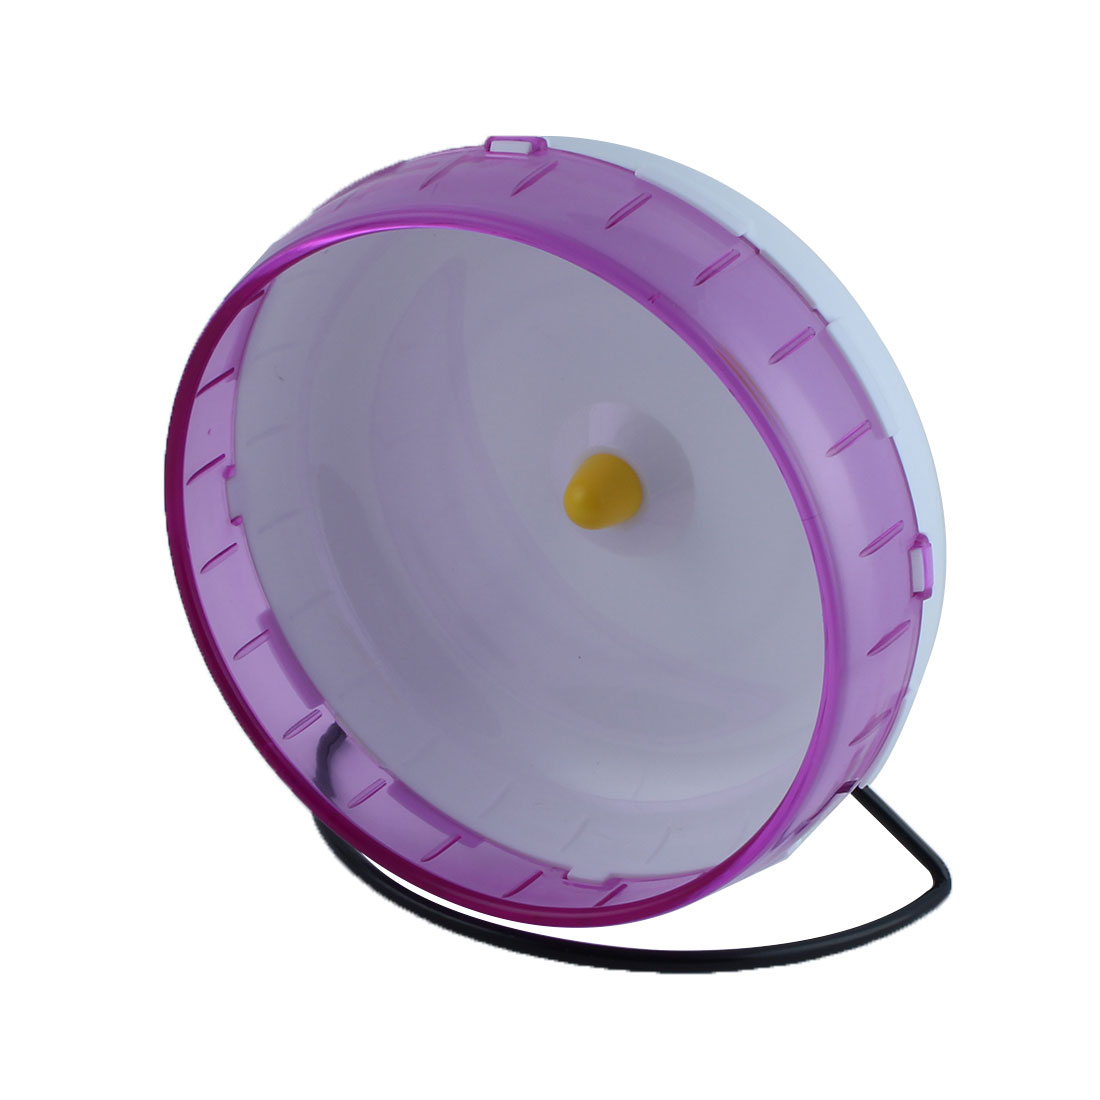 Unique Bargains Pet Hamster Gerbil Plastic Exercise Play Stand Wheel Toy Holder Purple 21cm Dia